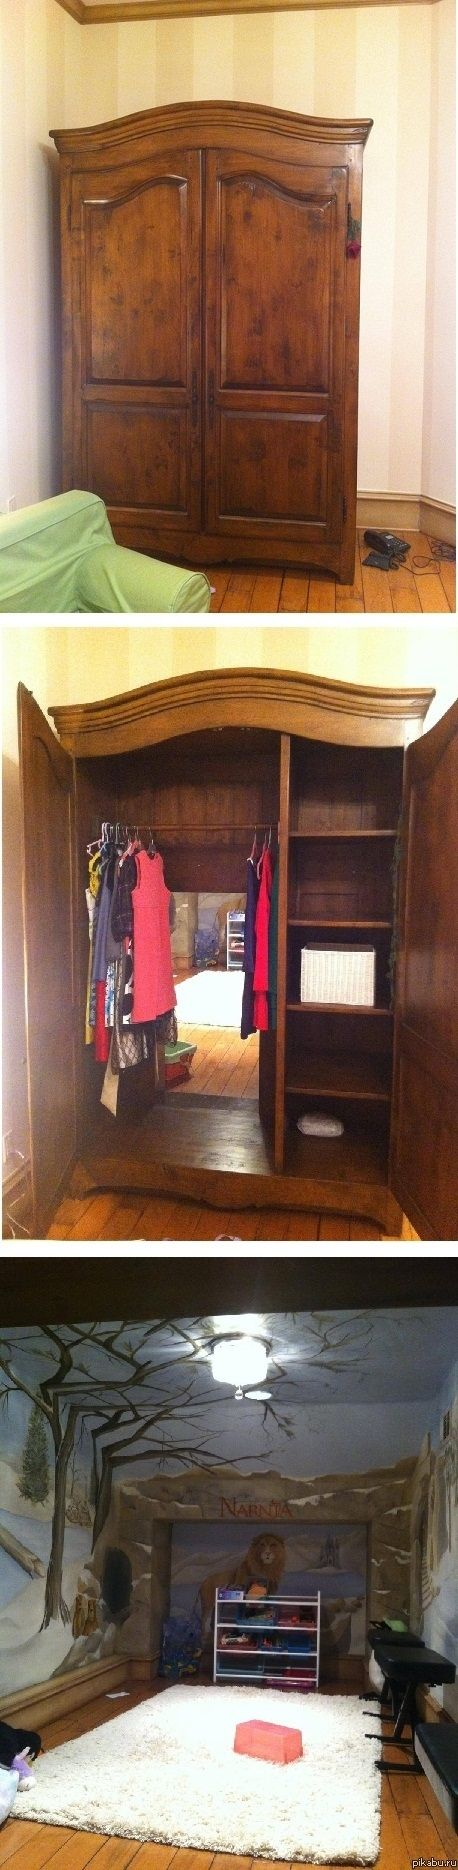 I'm sure this is all over Pinterest already... but this is a truly amazing real-life Narnia Wardrobe! I'd love to copy this because we have empty attic space behind one of the bedrooms... let's see if Andy will let me cut a hole in the wall :)